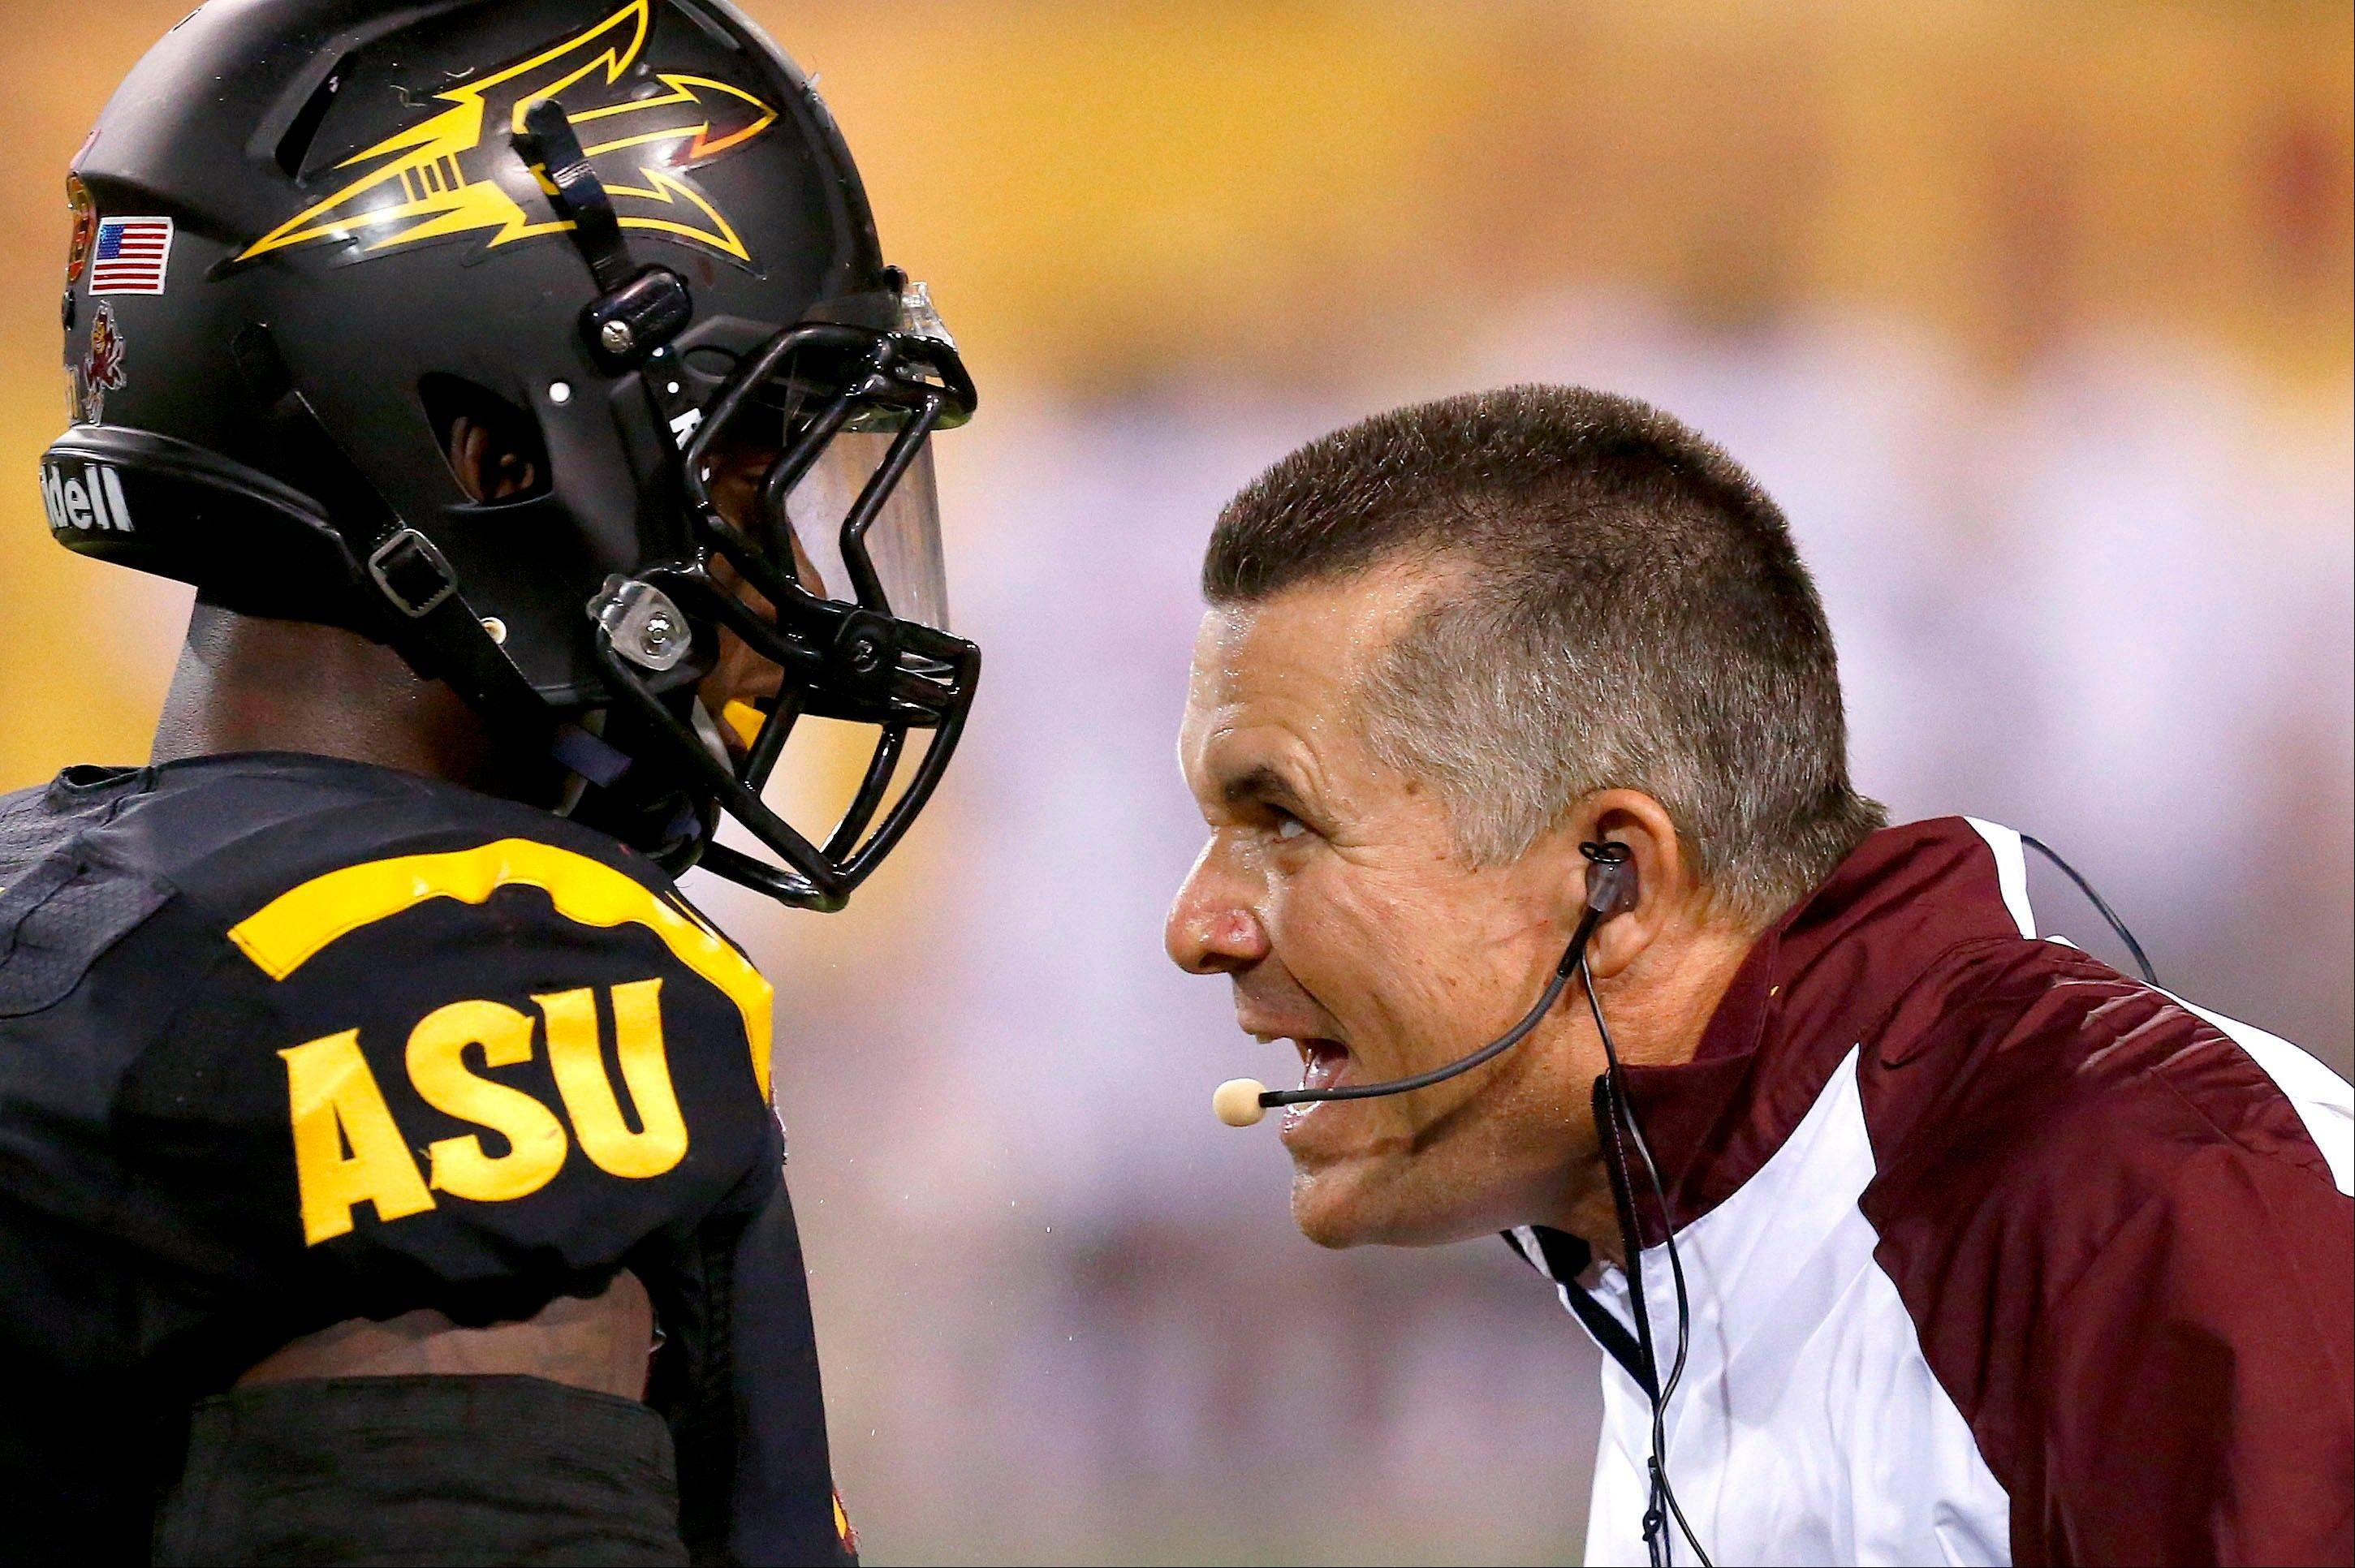 Arizona State head coach Todd Graham tries to make a point to Anthony Jones during the Sept. 14 win over Wisconsin. Beating Notre Dame on Saturday at the end of a four-game gauntlet would be a nice capper for the No. 22 Sun Devils, giving them a huge boost on the national stage.